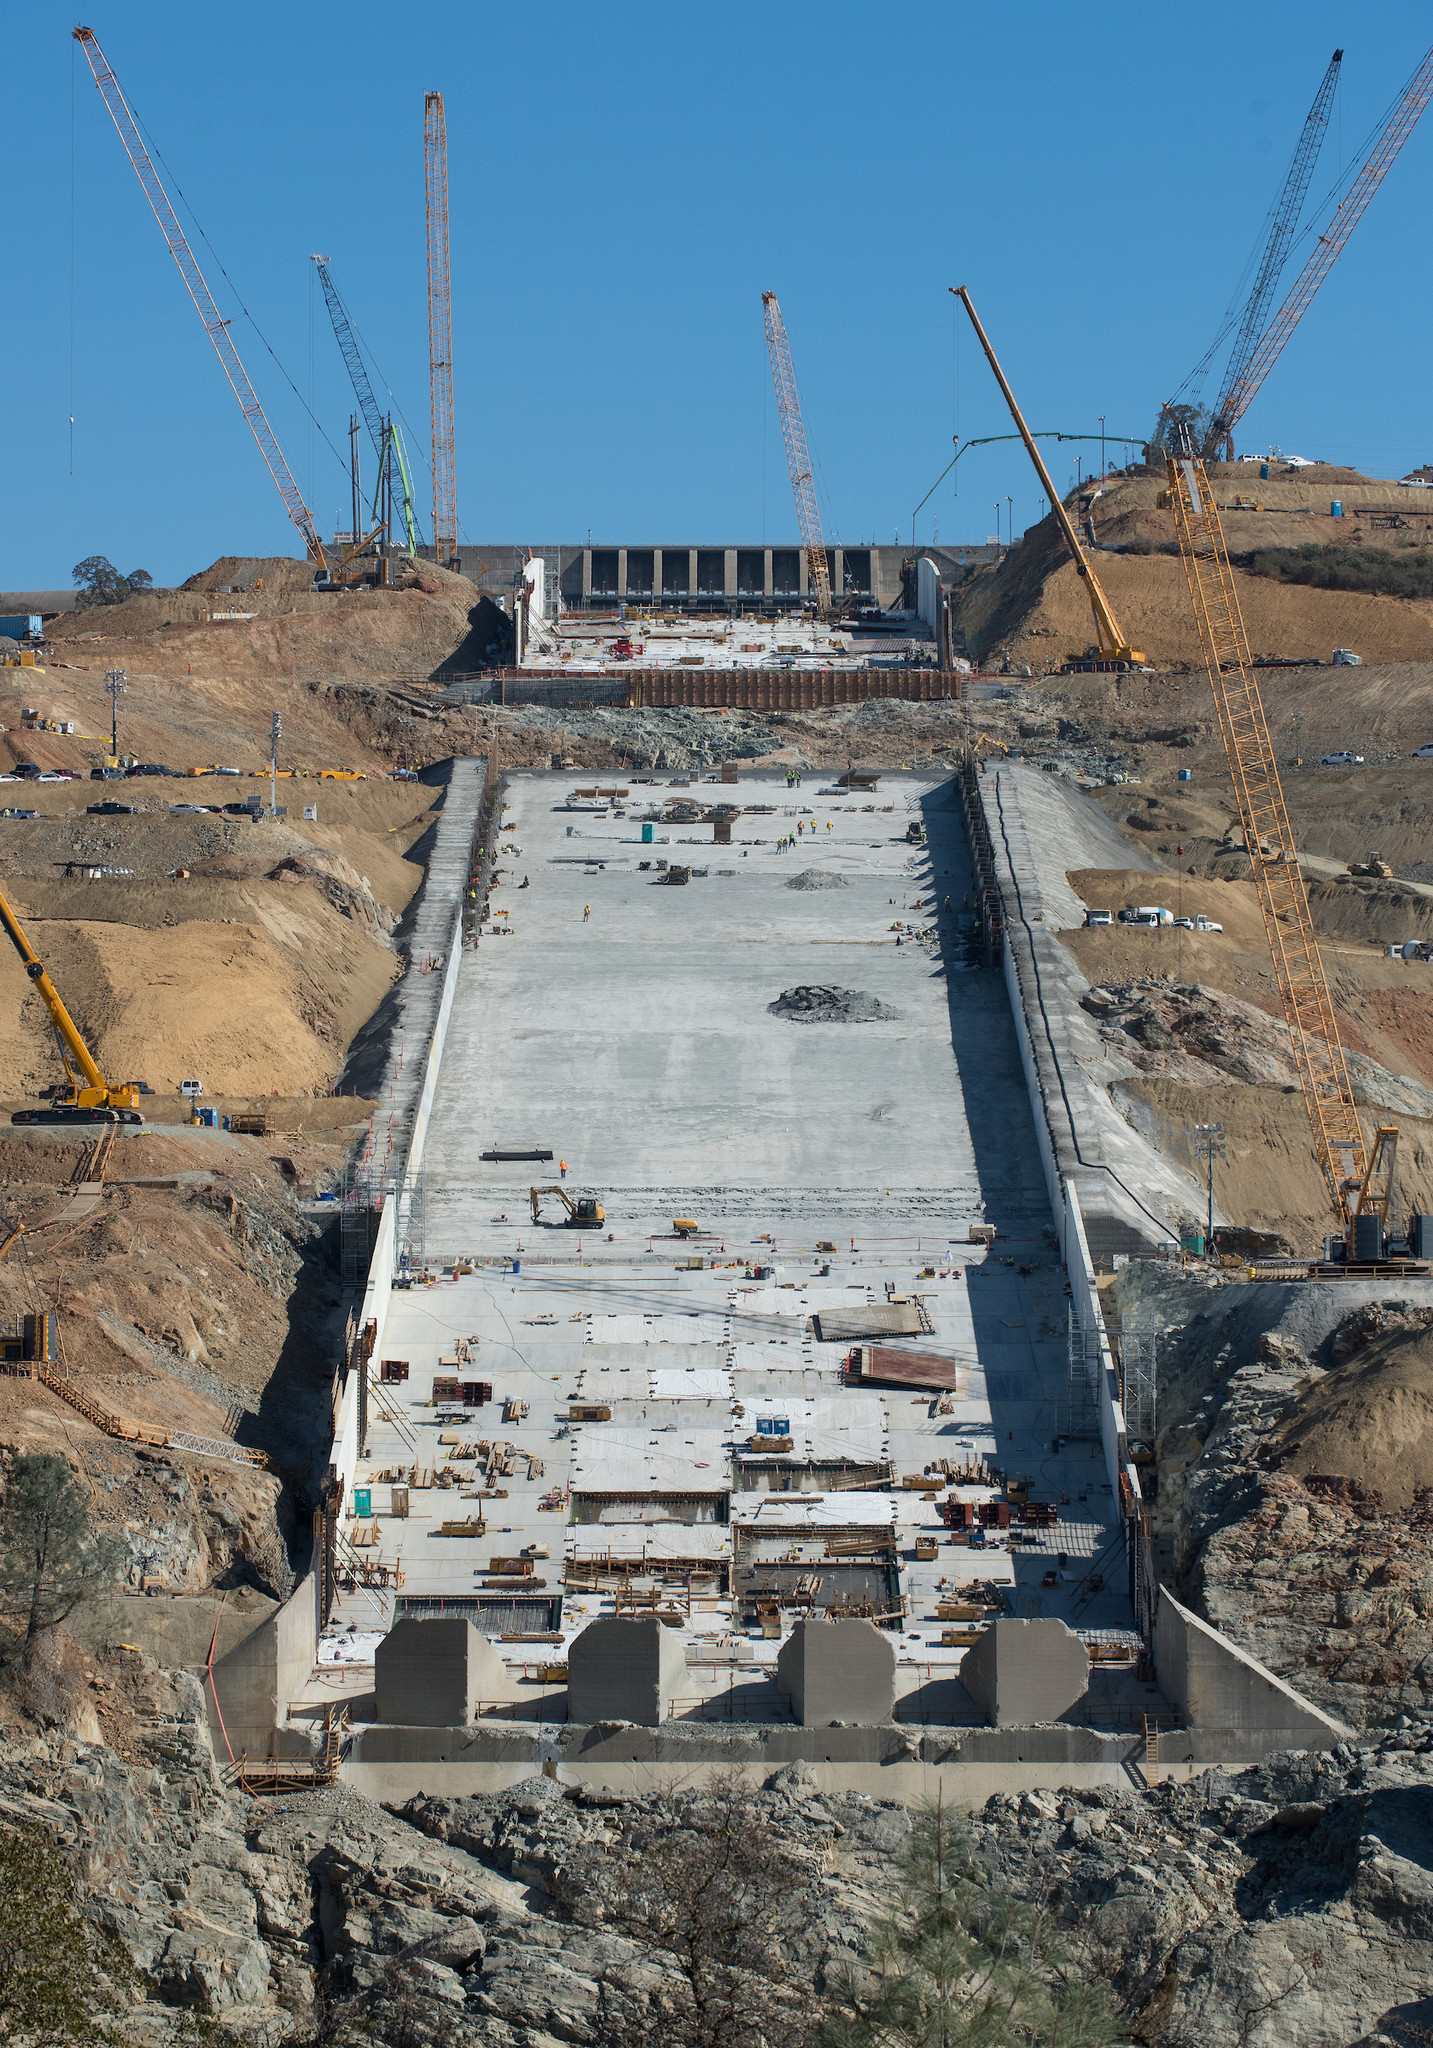 Crews continue placing rebar panels for the new sidewalls and structural concrete on the Lake Oroville flood control spillway on Oct. 13.